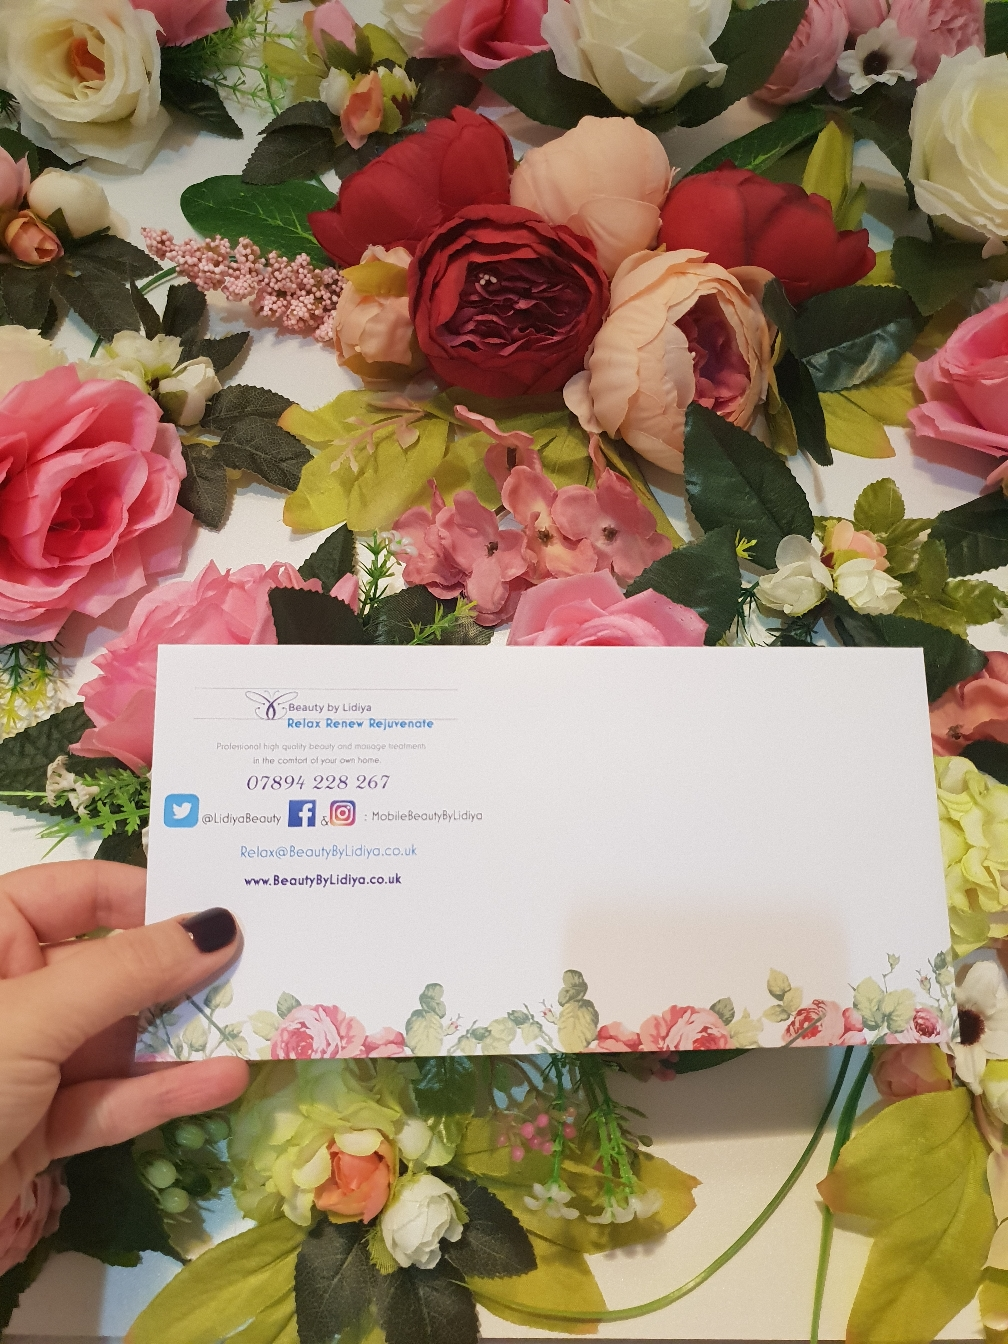 gift voucher mobile beauty by lidiya home visit st albans pamper